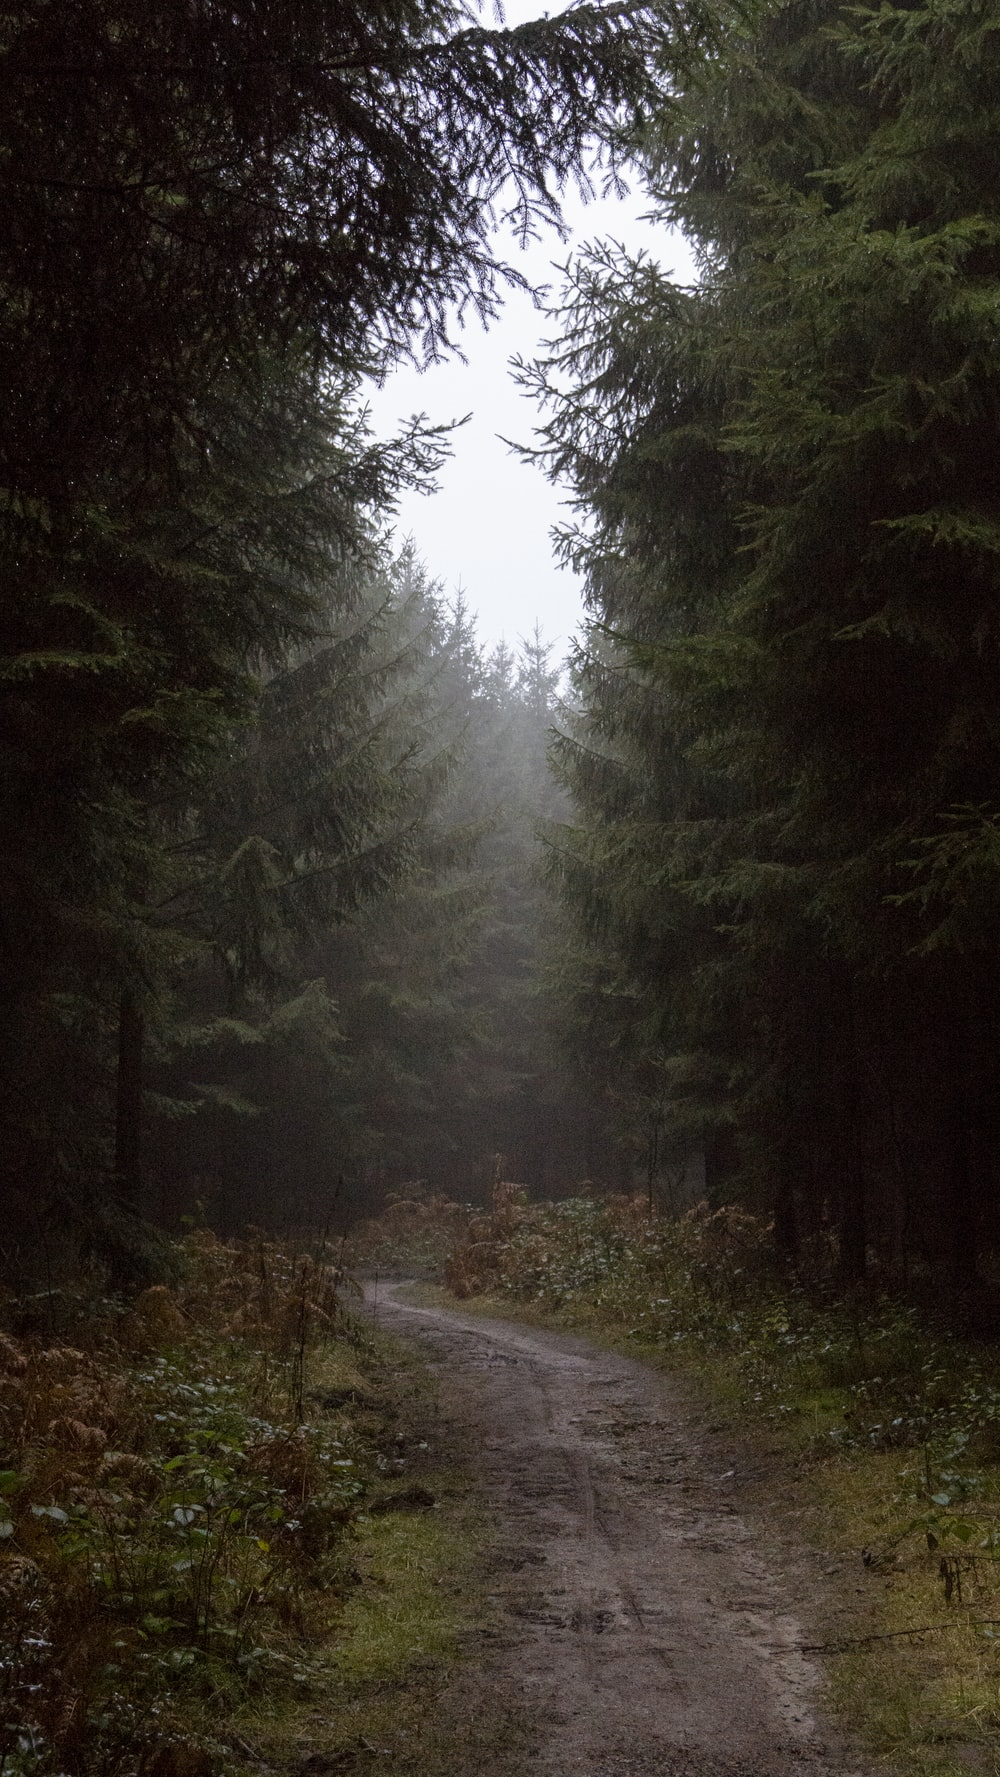 gray road in between green trees during daytime